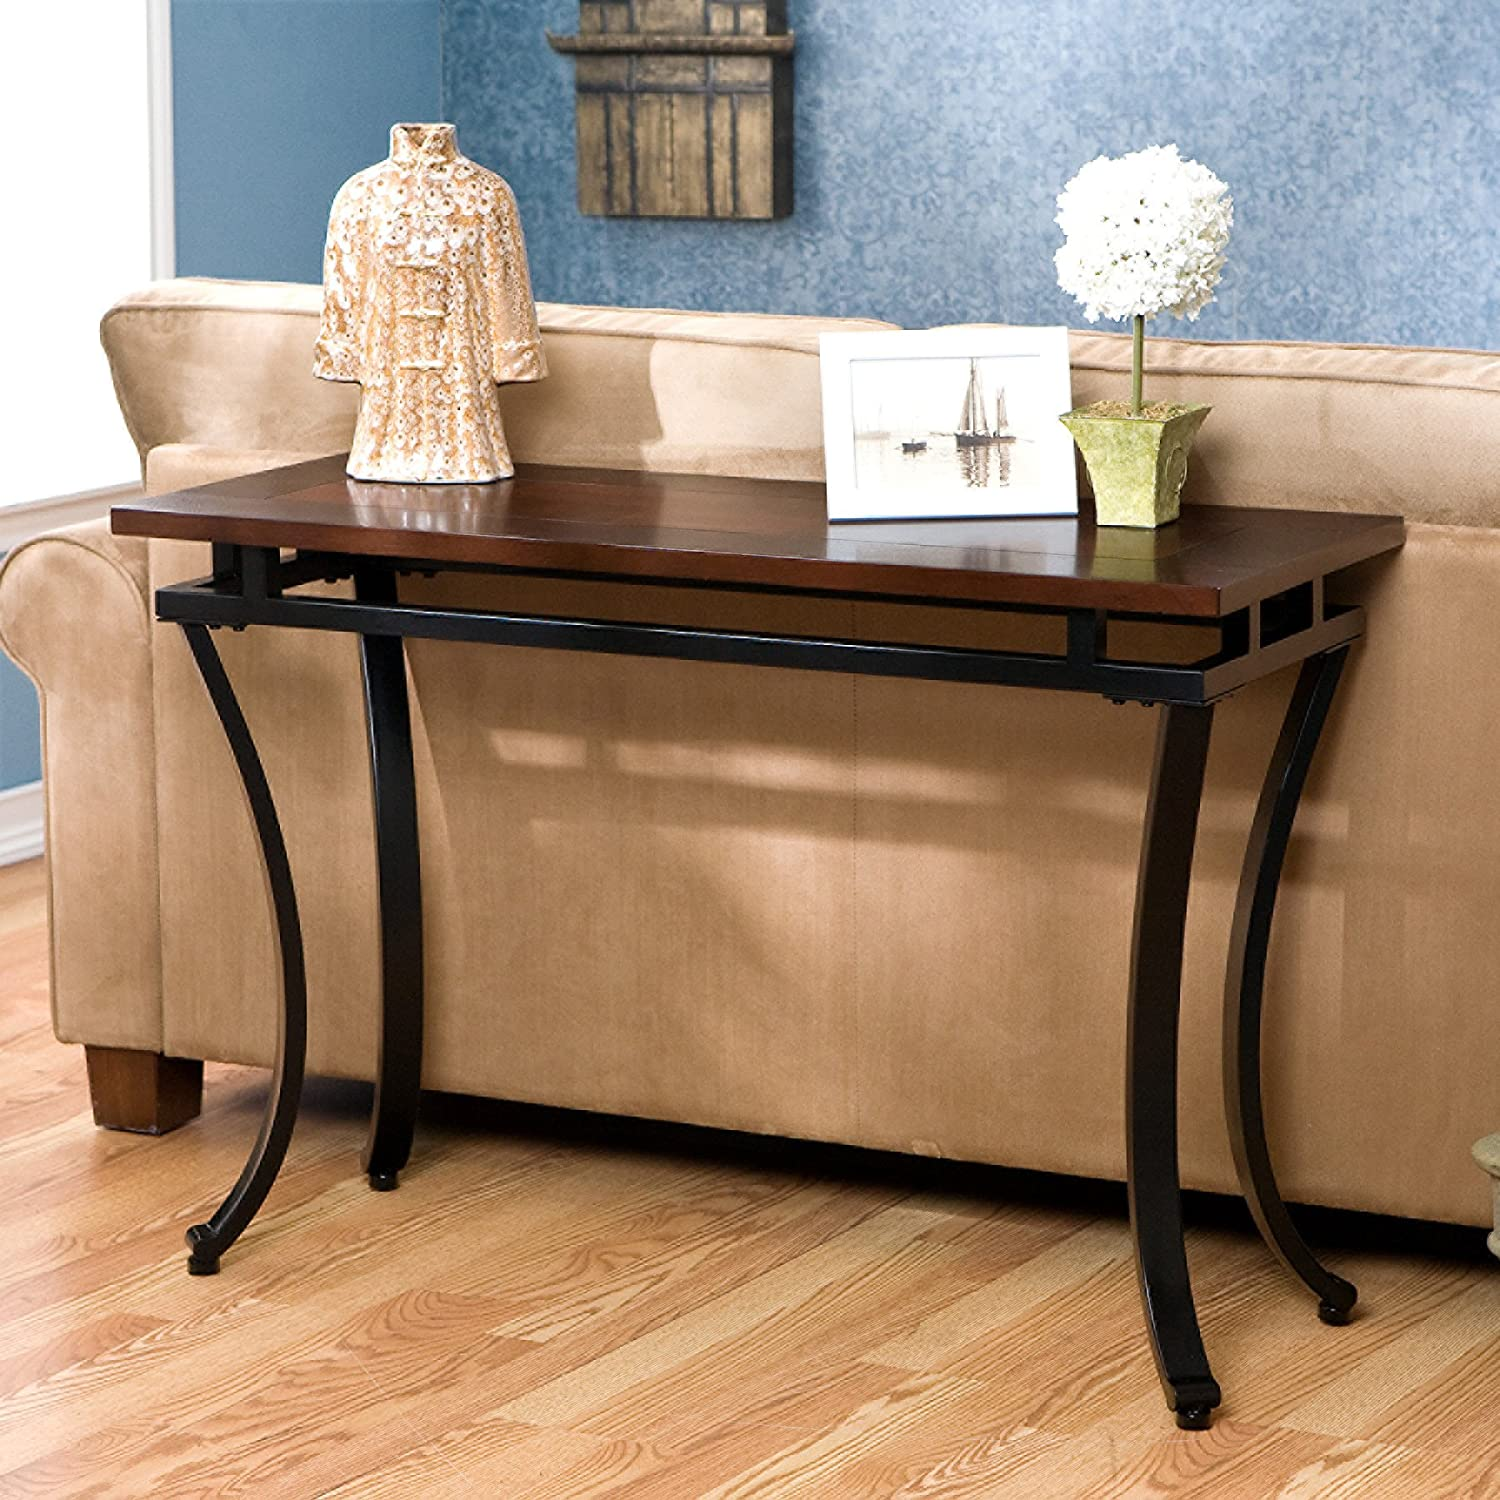 Amazon com accent sofa table black metal with espresso finish wood top kitchen dining